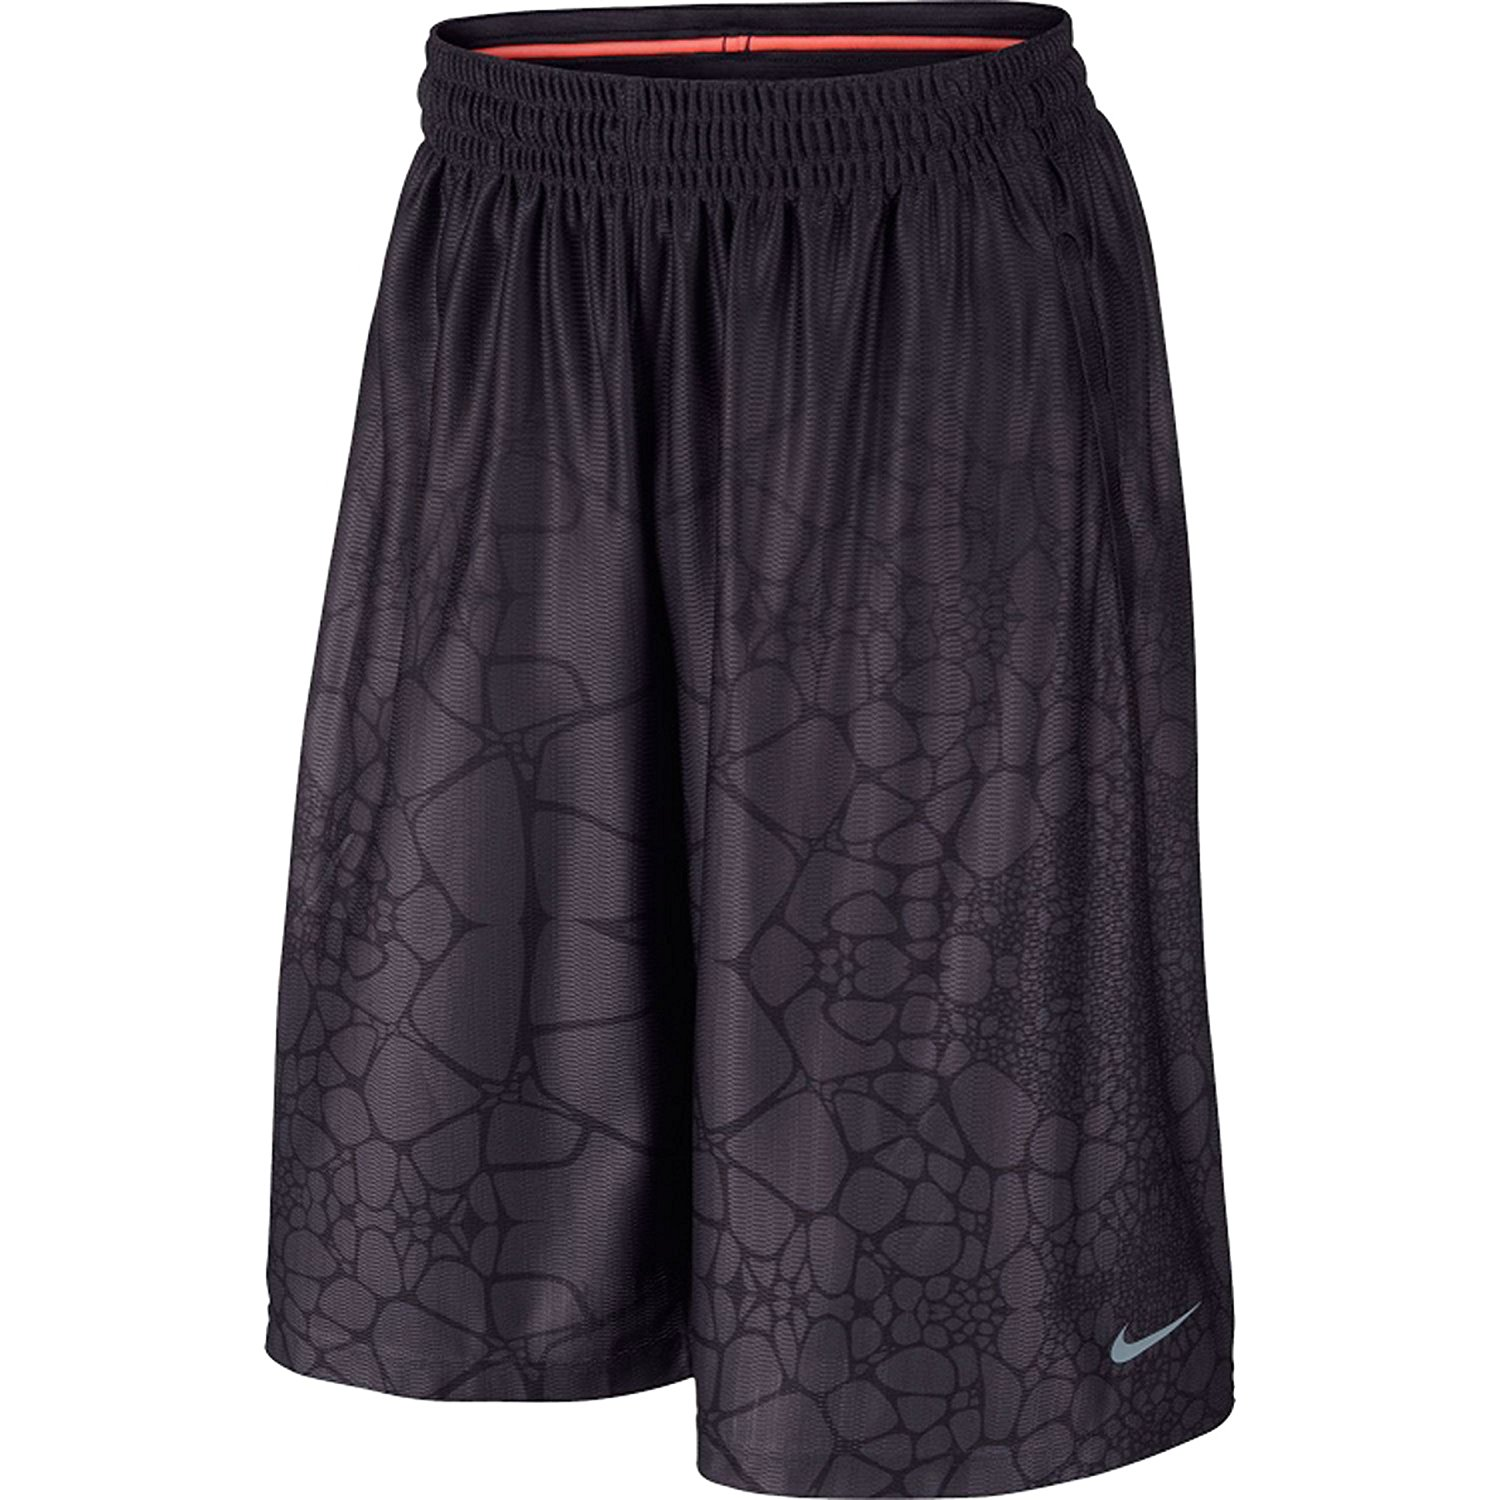 brand new 6bd8a 48fd7 Get Quotations · Nike Mens Lebron Tamed AOP Basketball Shorts Purple